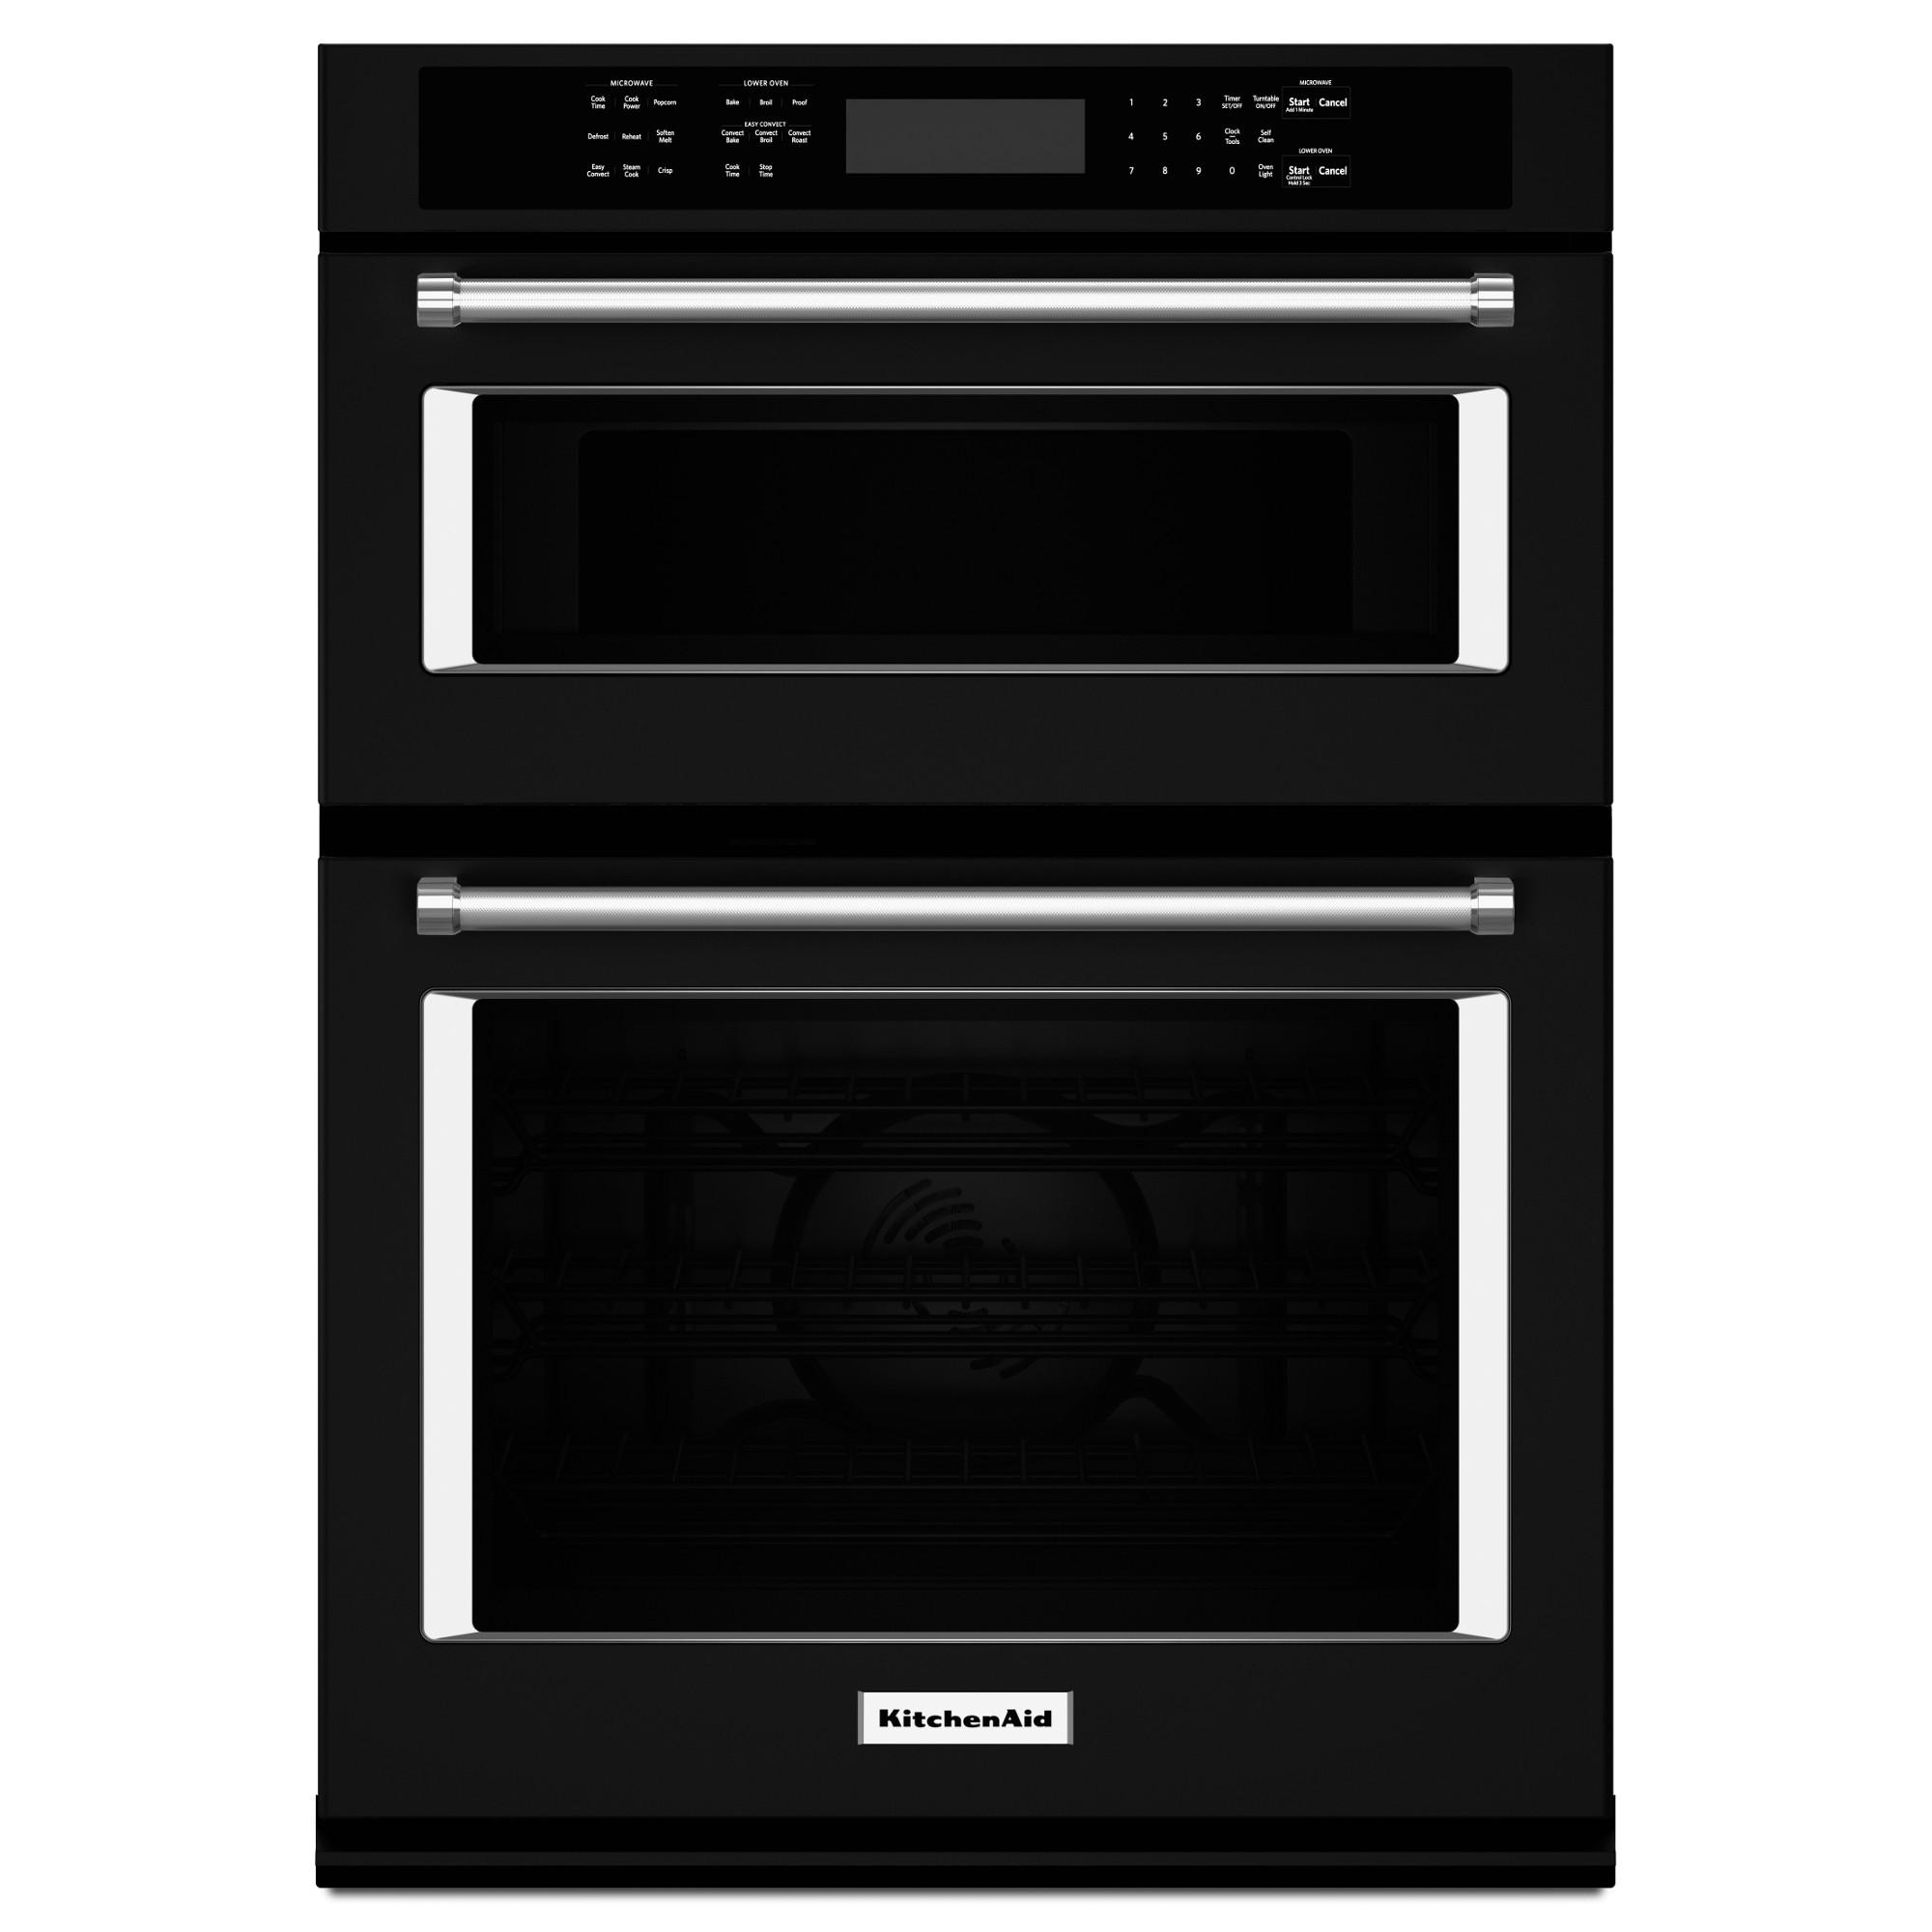 KitchenAid KOCE500EBL 30 Combination Wall Oven w/ Even-Heat™ True Convection - Black